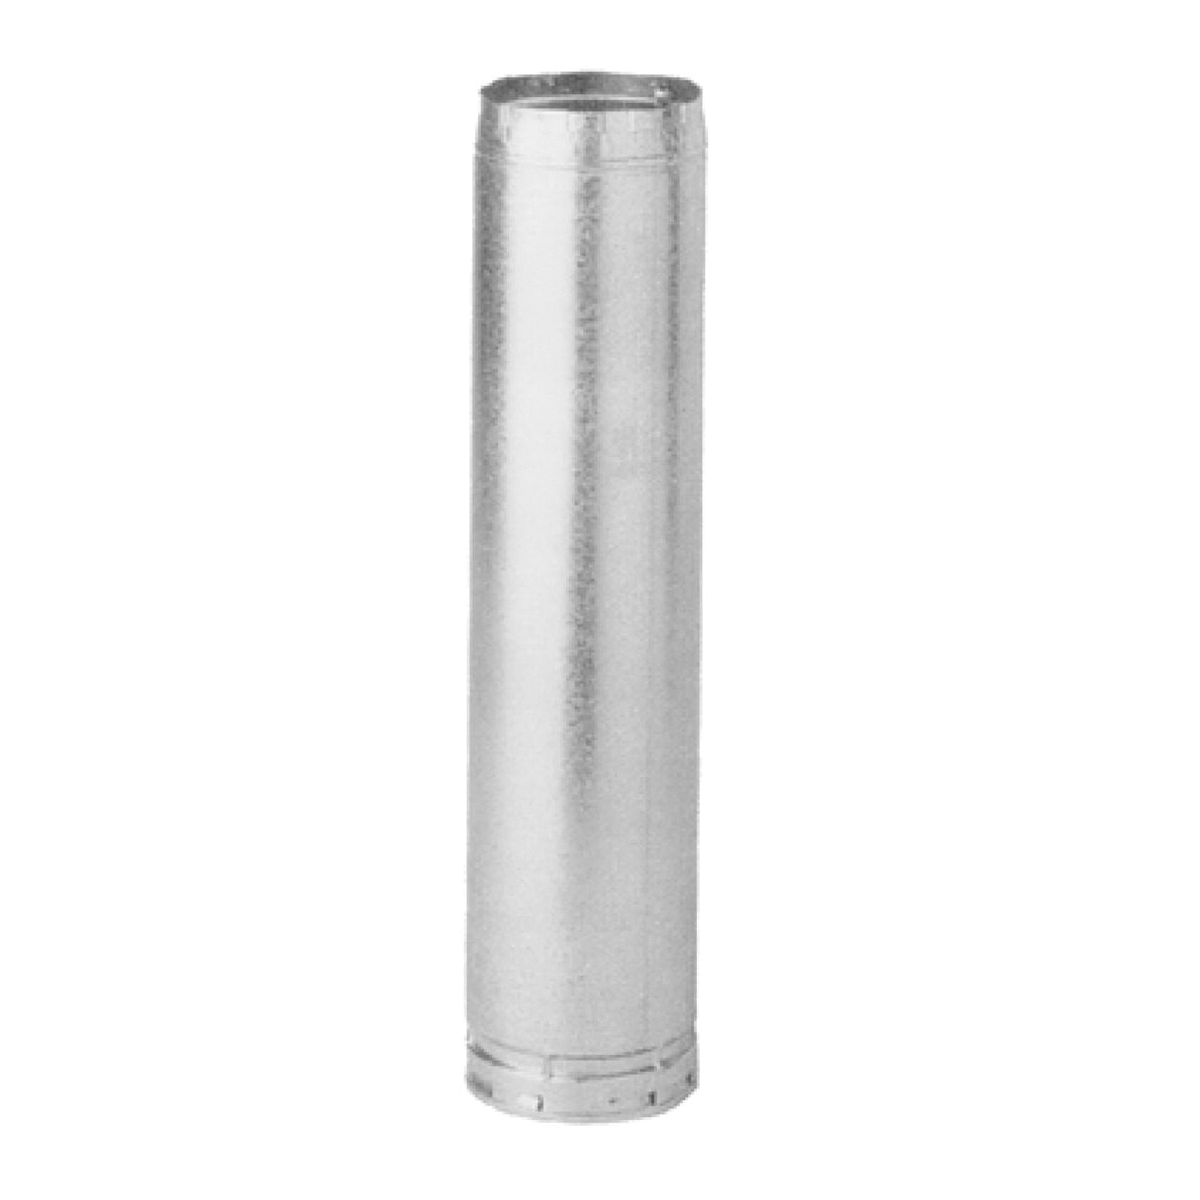 AmeriVent® 3E12A Type B Gas Vent Pipe Section, Steel/Aluminum, 3 in ID x 3-1/2 in OD Dia x 12 in Adjustable L, Galvanized, Import